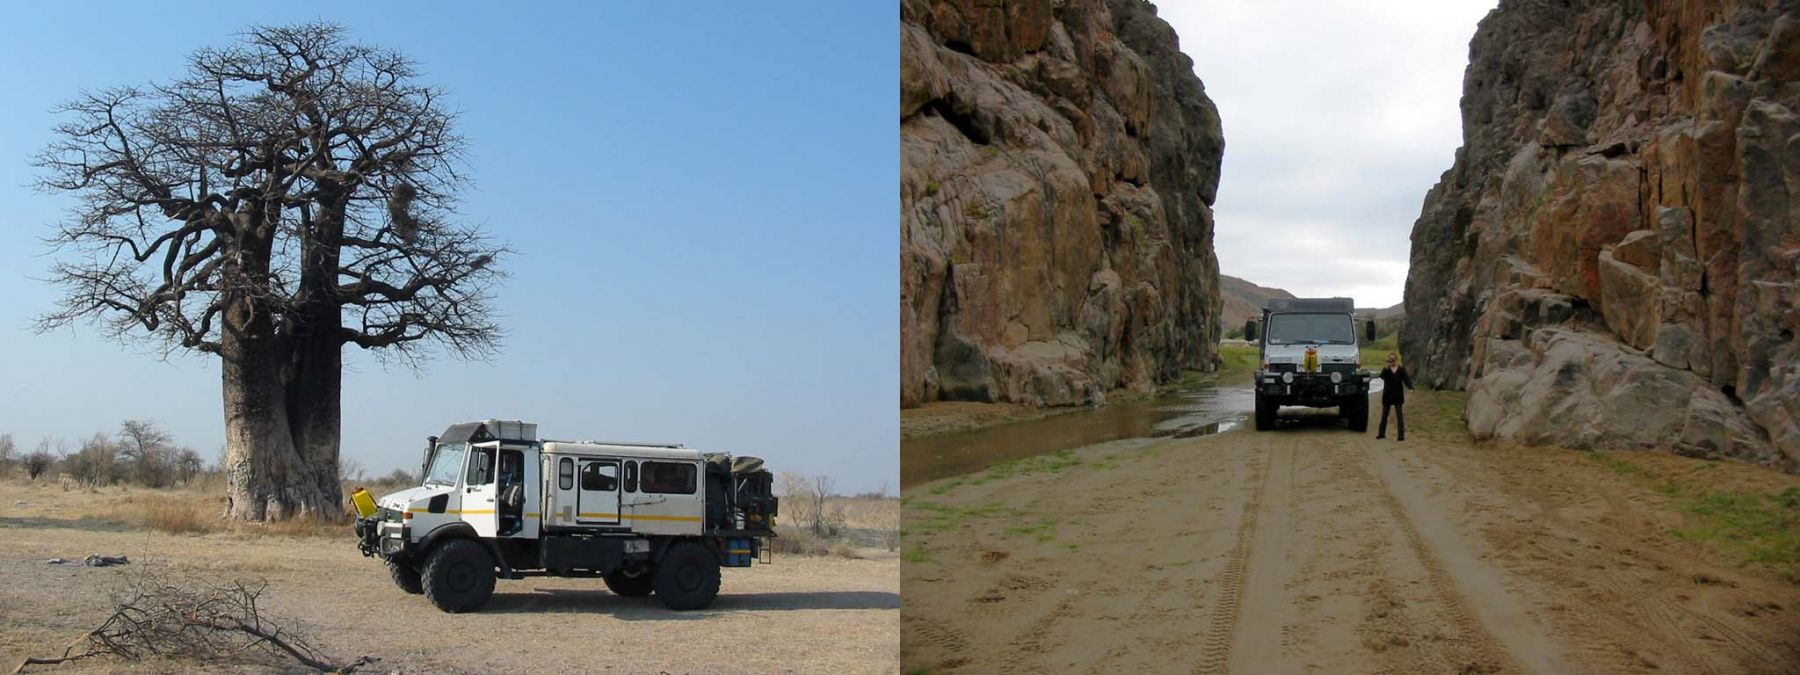 U1550l Camper Trip Through South African Wildernes